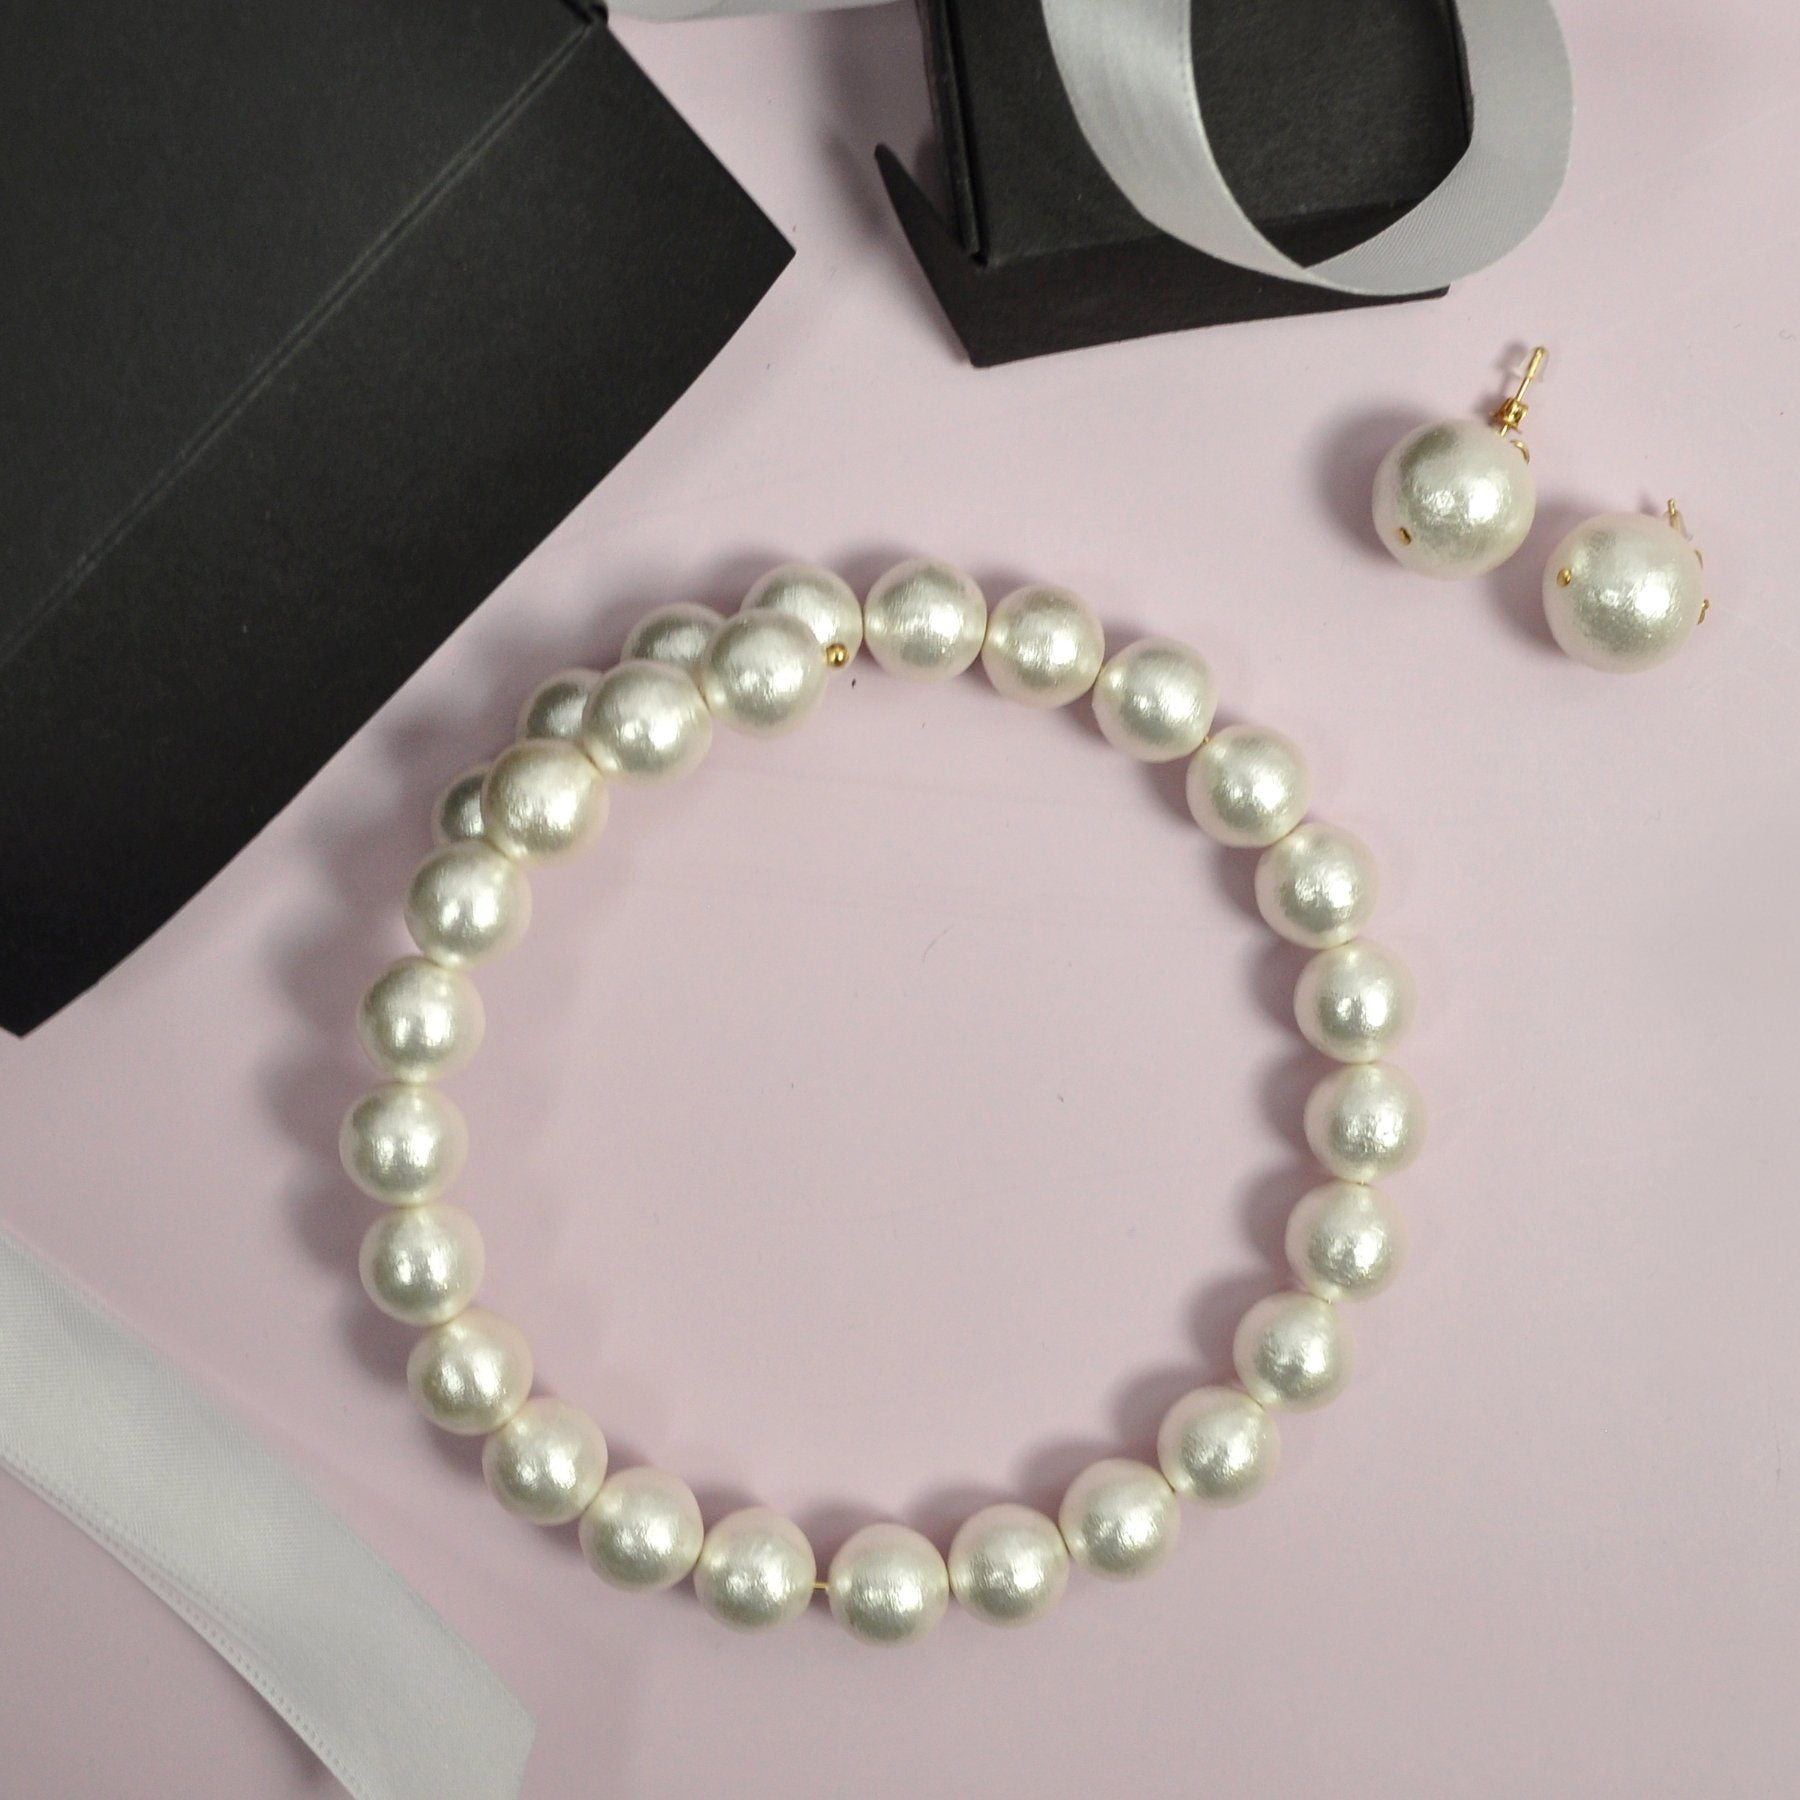 Cotton Pearl Necklace & Earring - Gift Set